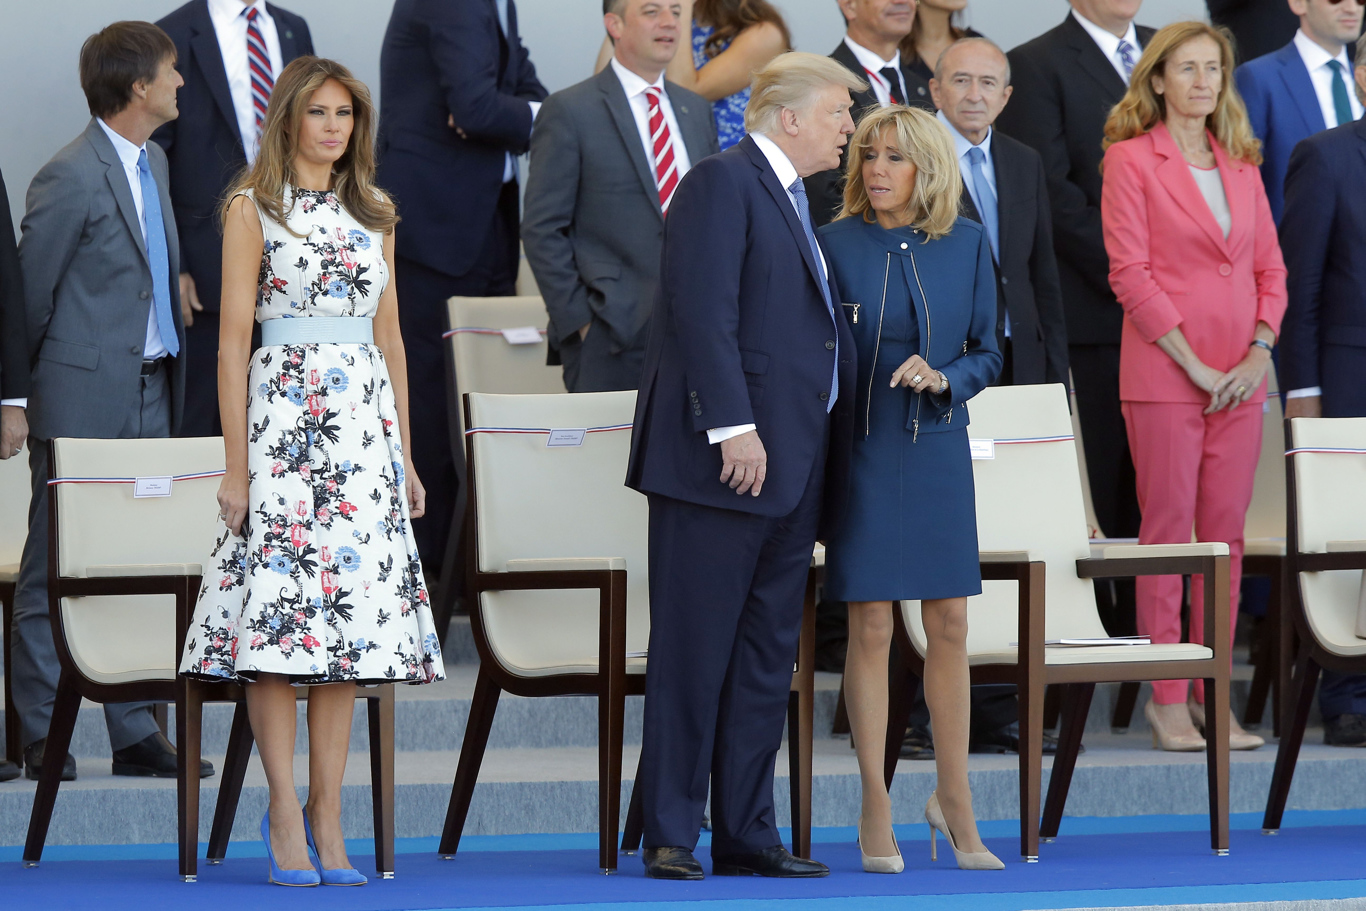 Brigitte Macron, wife of French President Emmanuel Macron, discusses with U.S. President Donald Trump while U.S. First Lady Melanie Trump looks, prior to the traditional Bastille Day military parade on the Champs Elysees, in ParisBastille Day, Paris, France - 14 Jul 2017